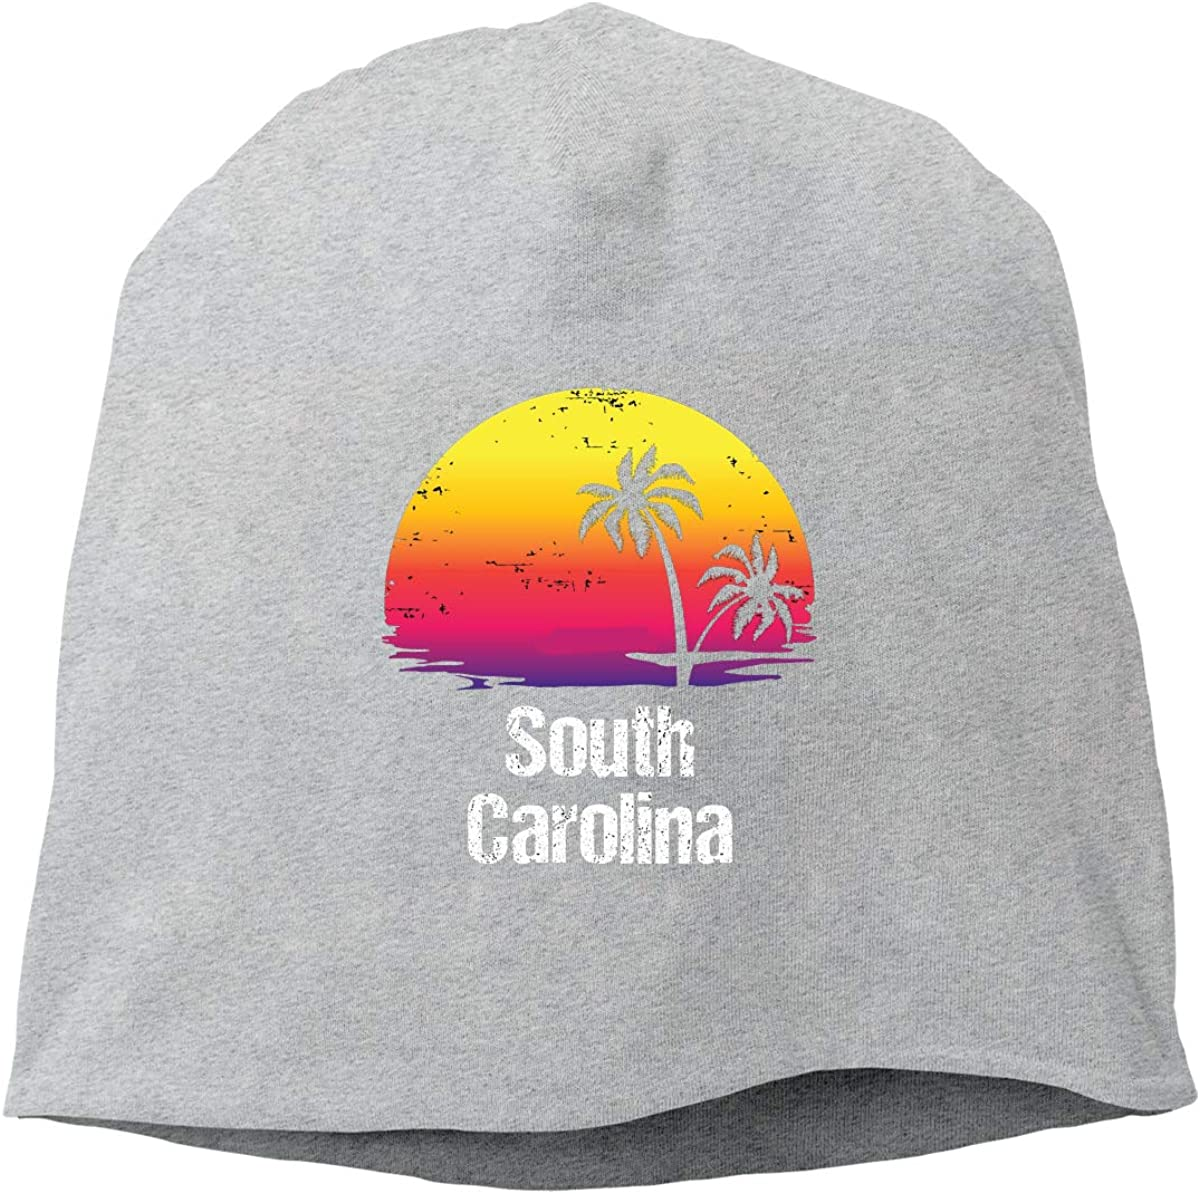 Summer Vacation South Carolina Unisex Knitted Hat Beanie Hat Warm Hats Skull Cap